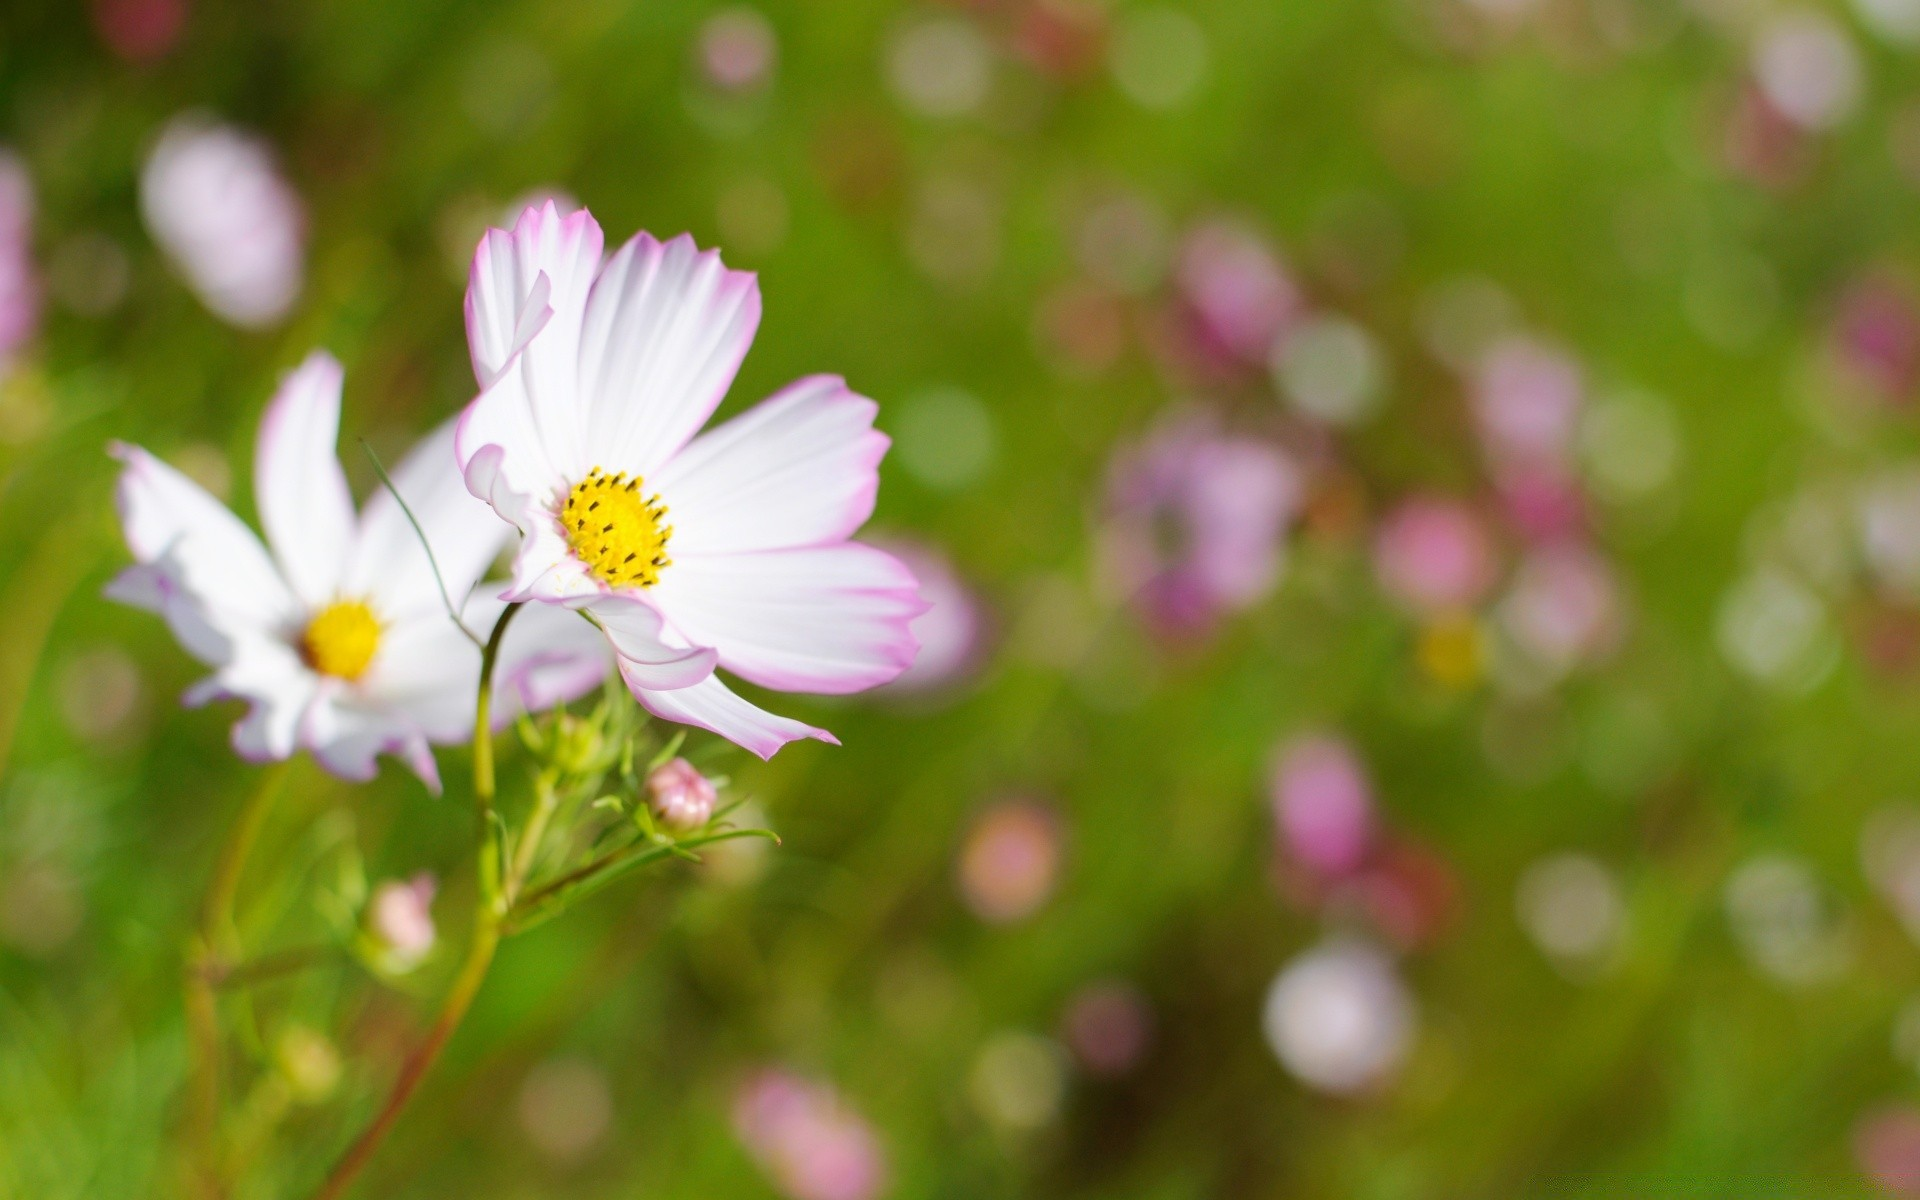 White cosmos flower with pink edges android wallpapers for free mightylinksfo